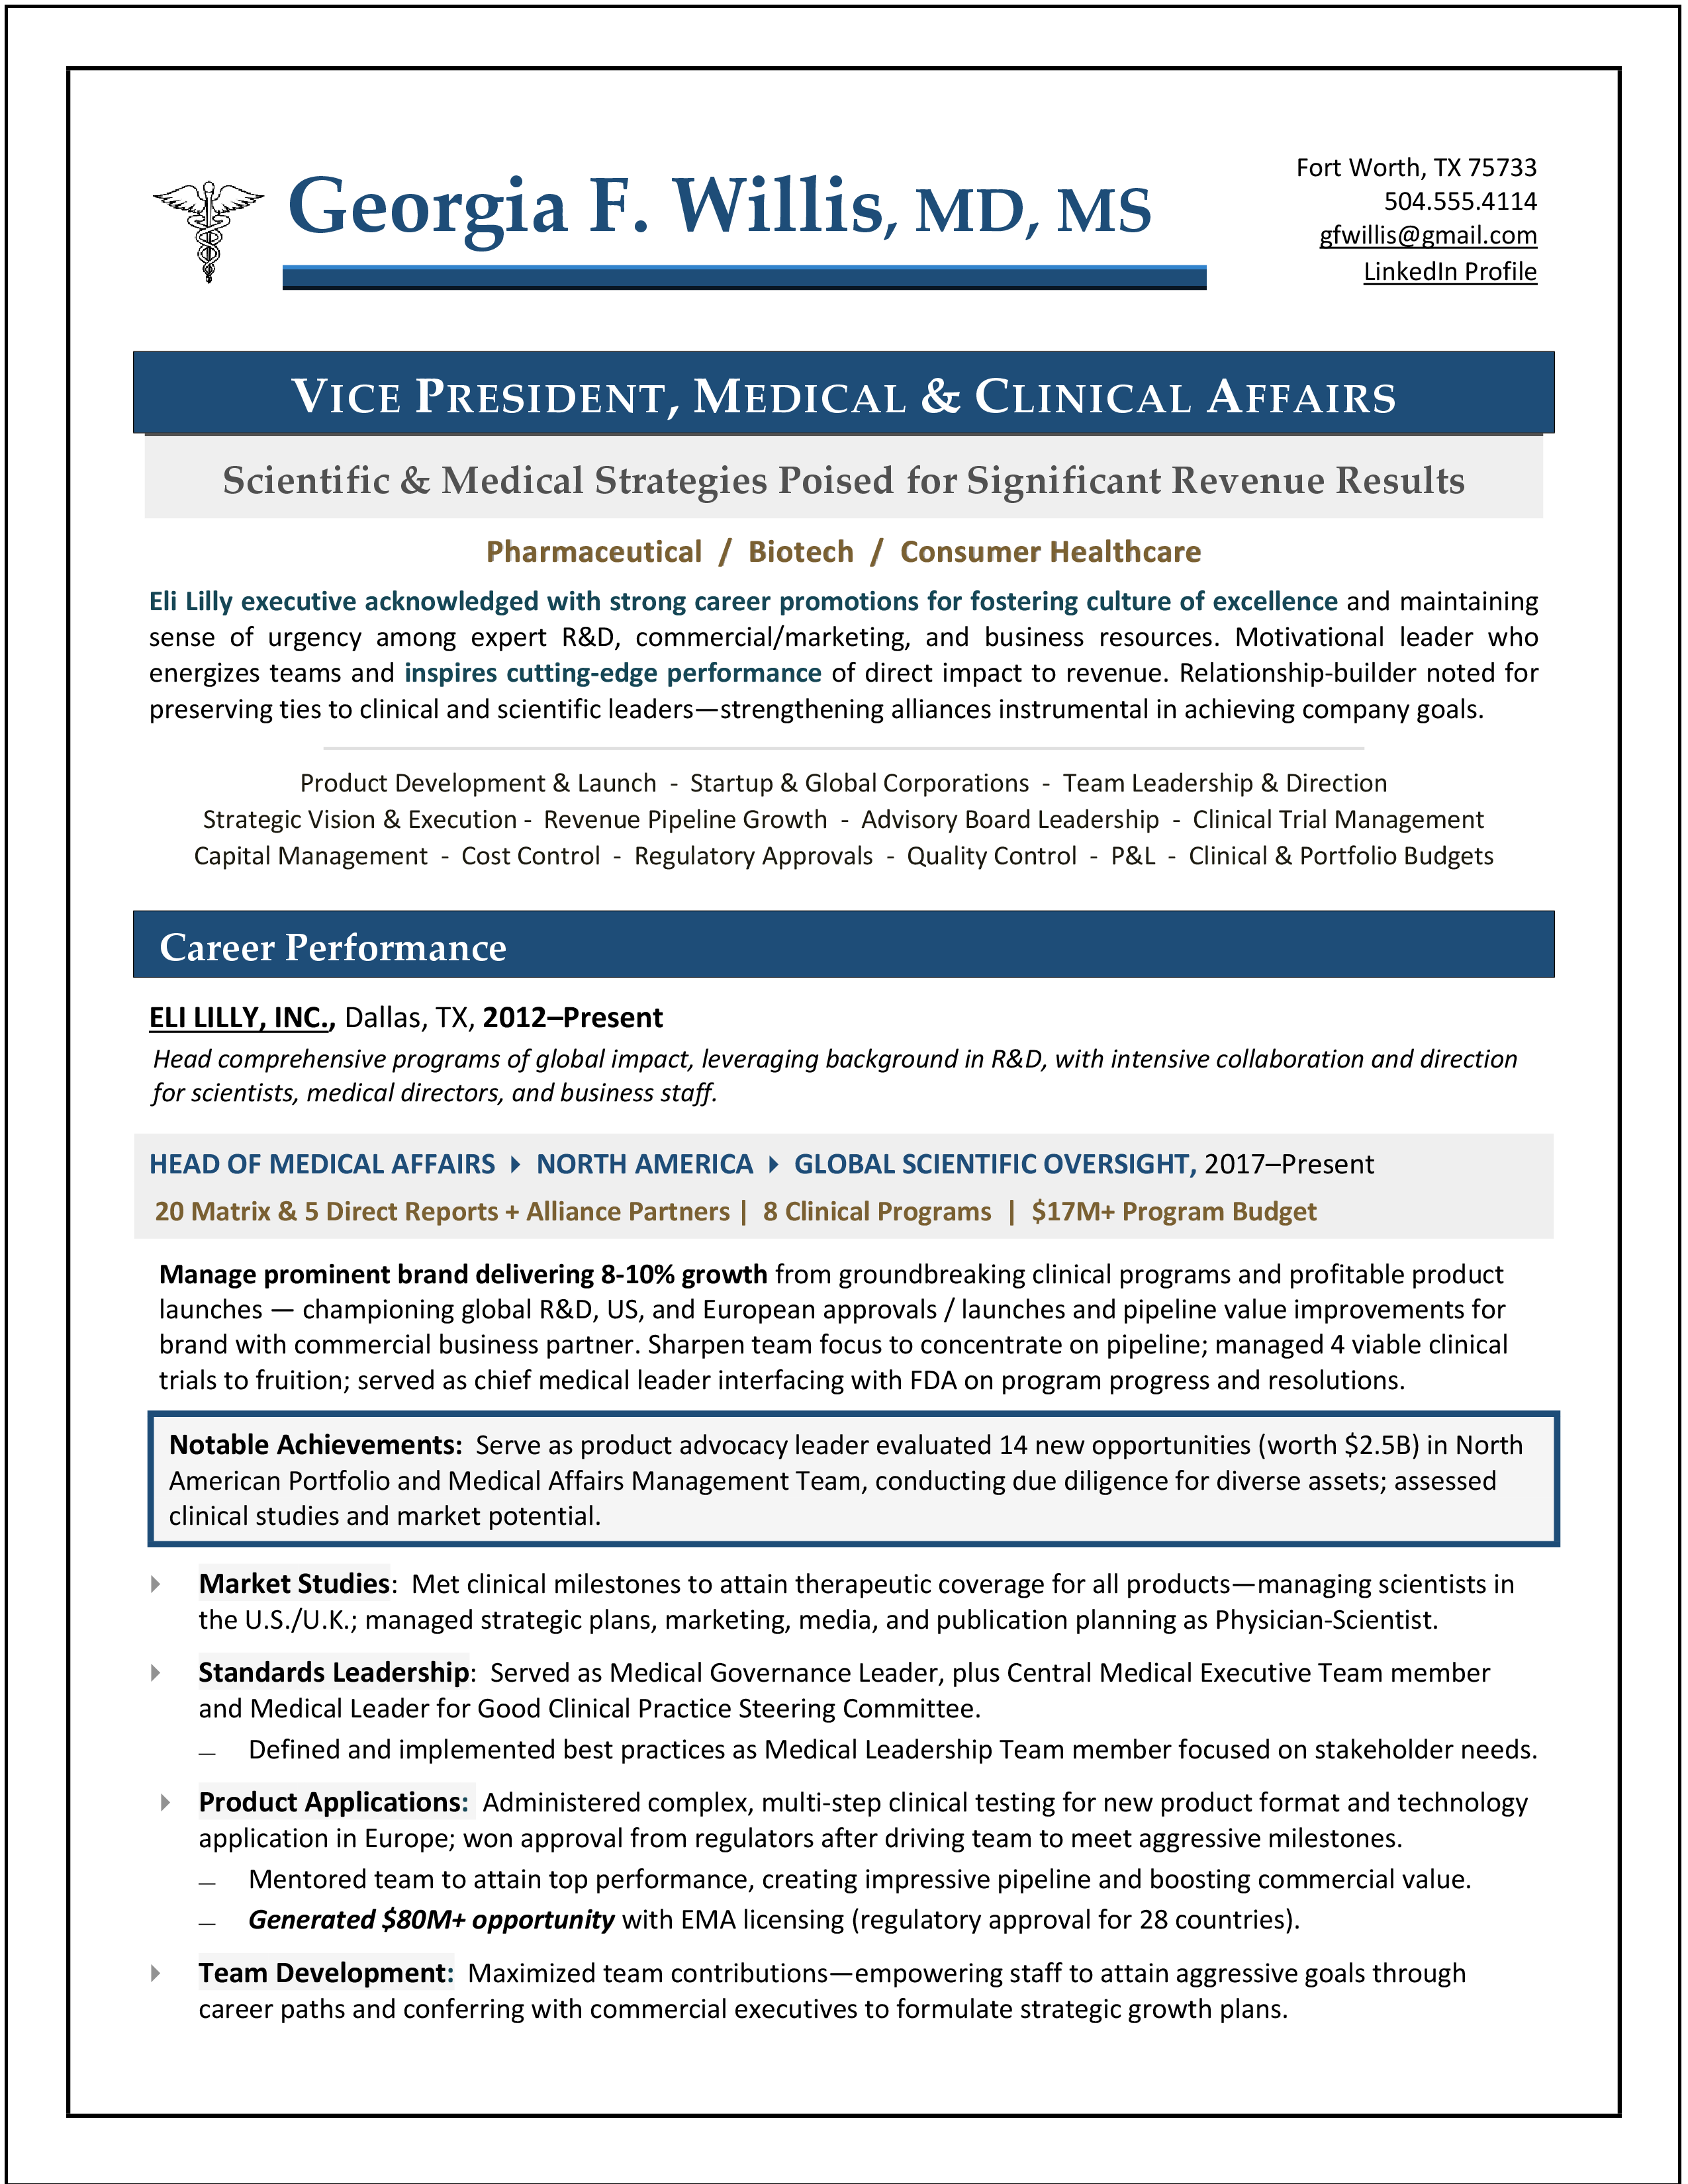 Vp Medical Affair Resume Clinical Writing Service Writer Executive Biotechnology Master Personal Statement